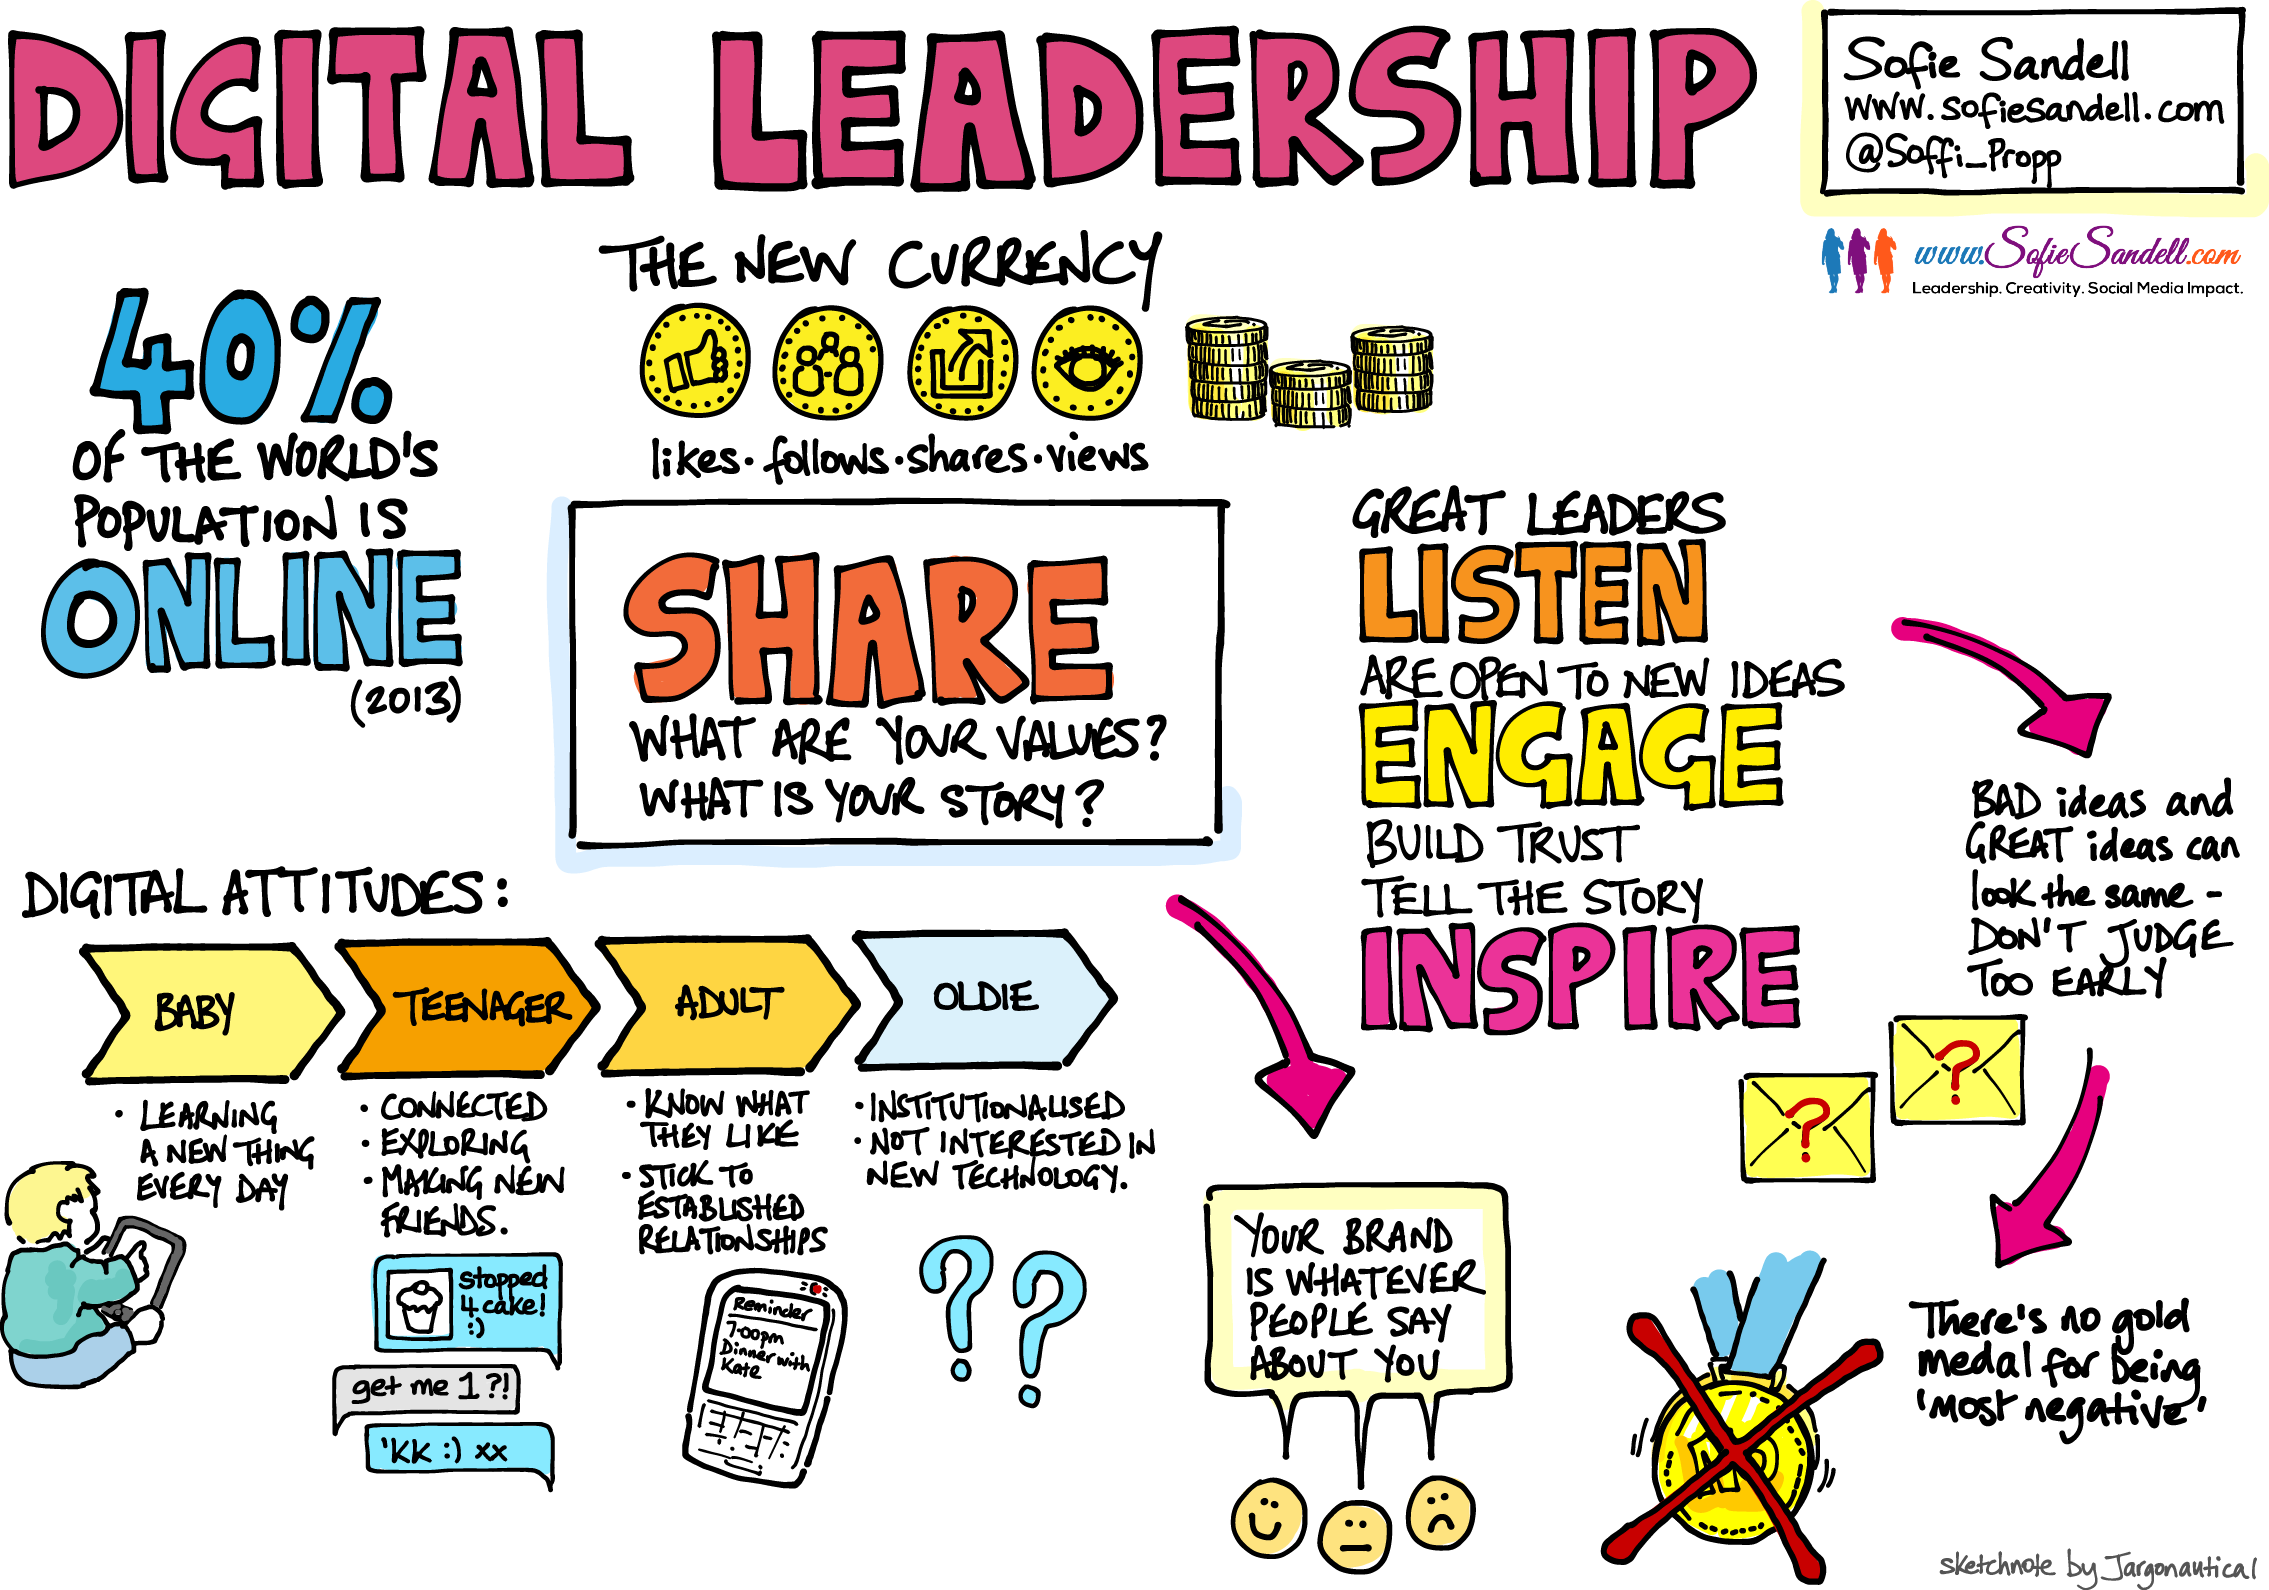 A sketch of Sofie Sandell's Digital Leadership talk